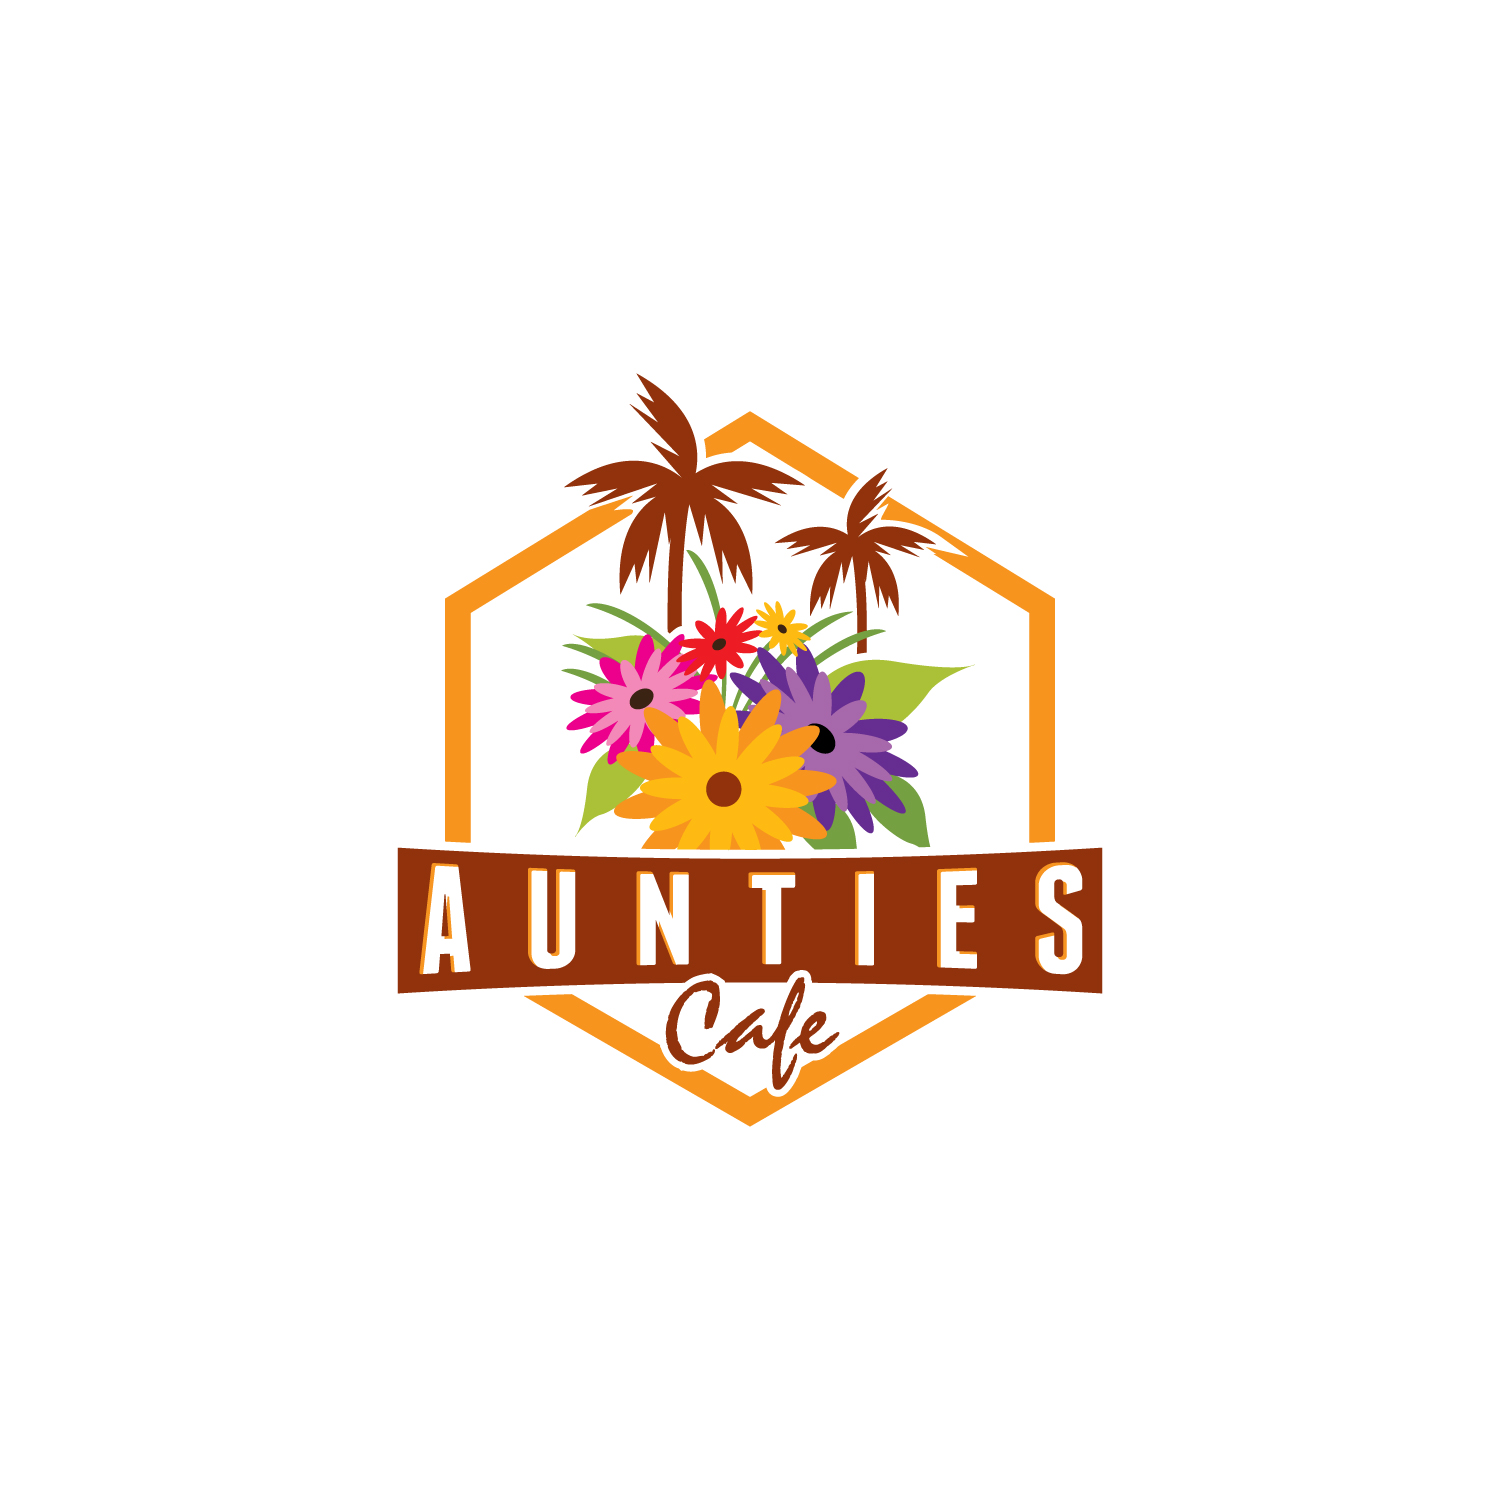 Elegant Colorful Restaurant Logo Design For Aunties Aloha Cafe By Creative Web Graphics Design 19496657